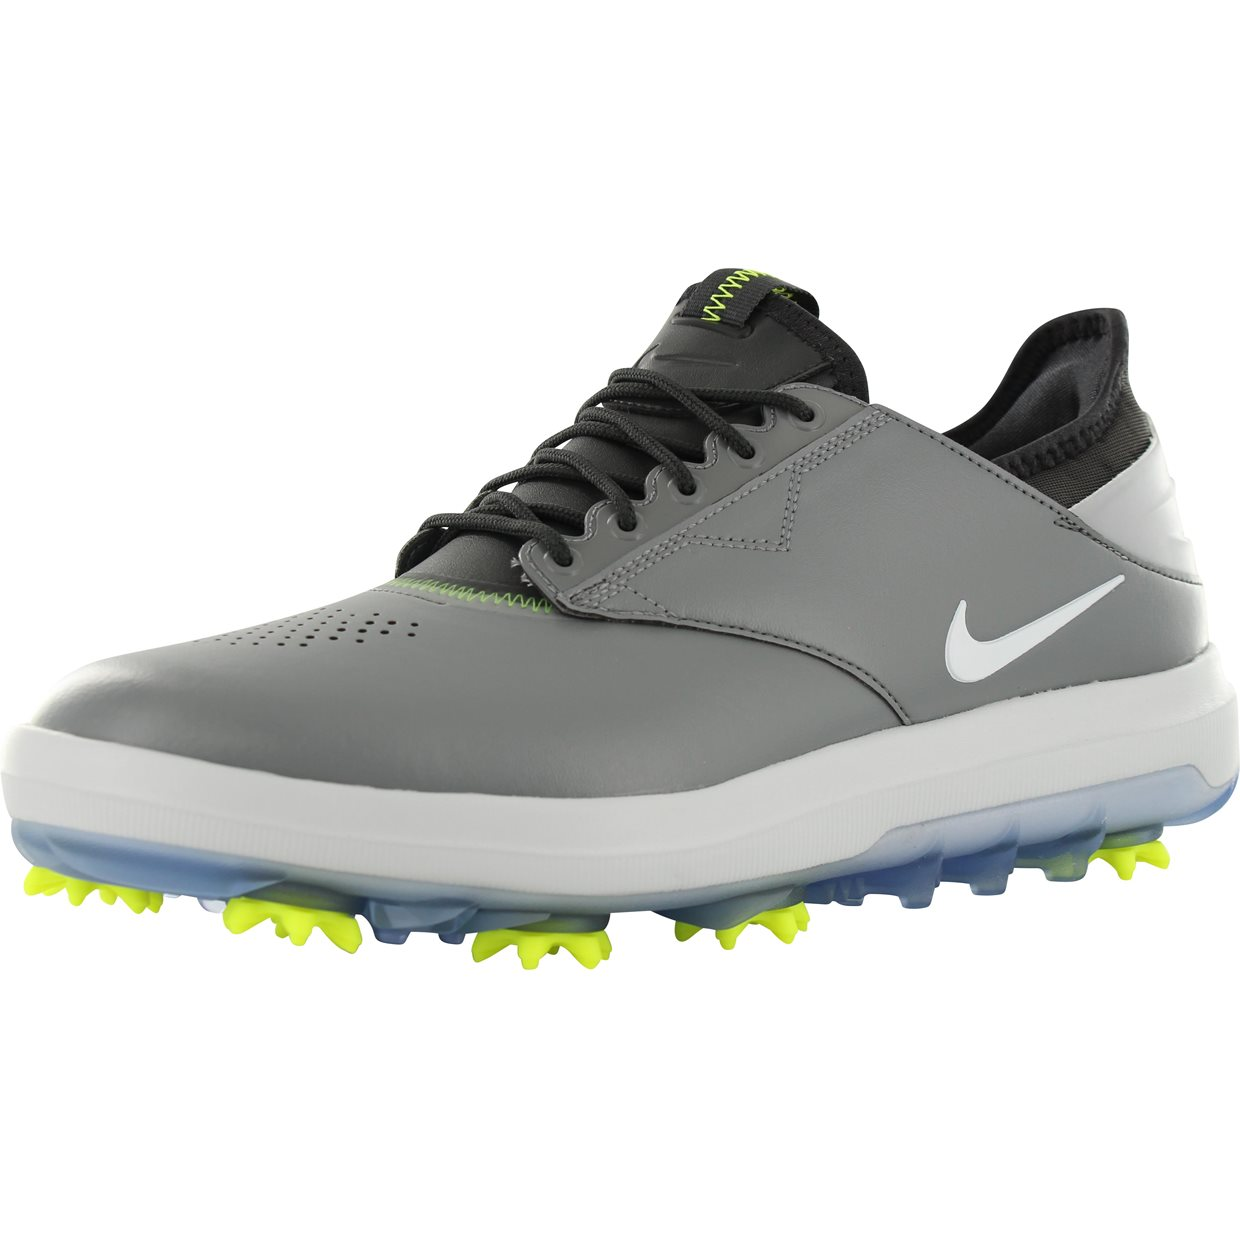 29fc76fe8194 Nike Air Zoom Direct Golf Shoe in Cool Grey Black Wolf Anthracite